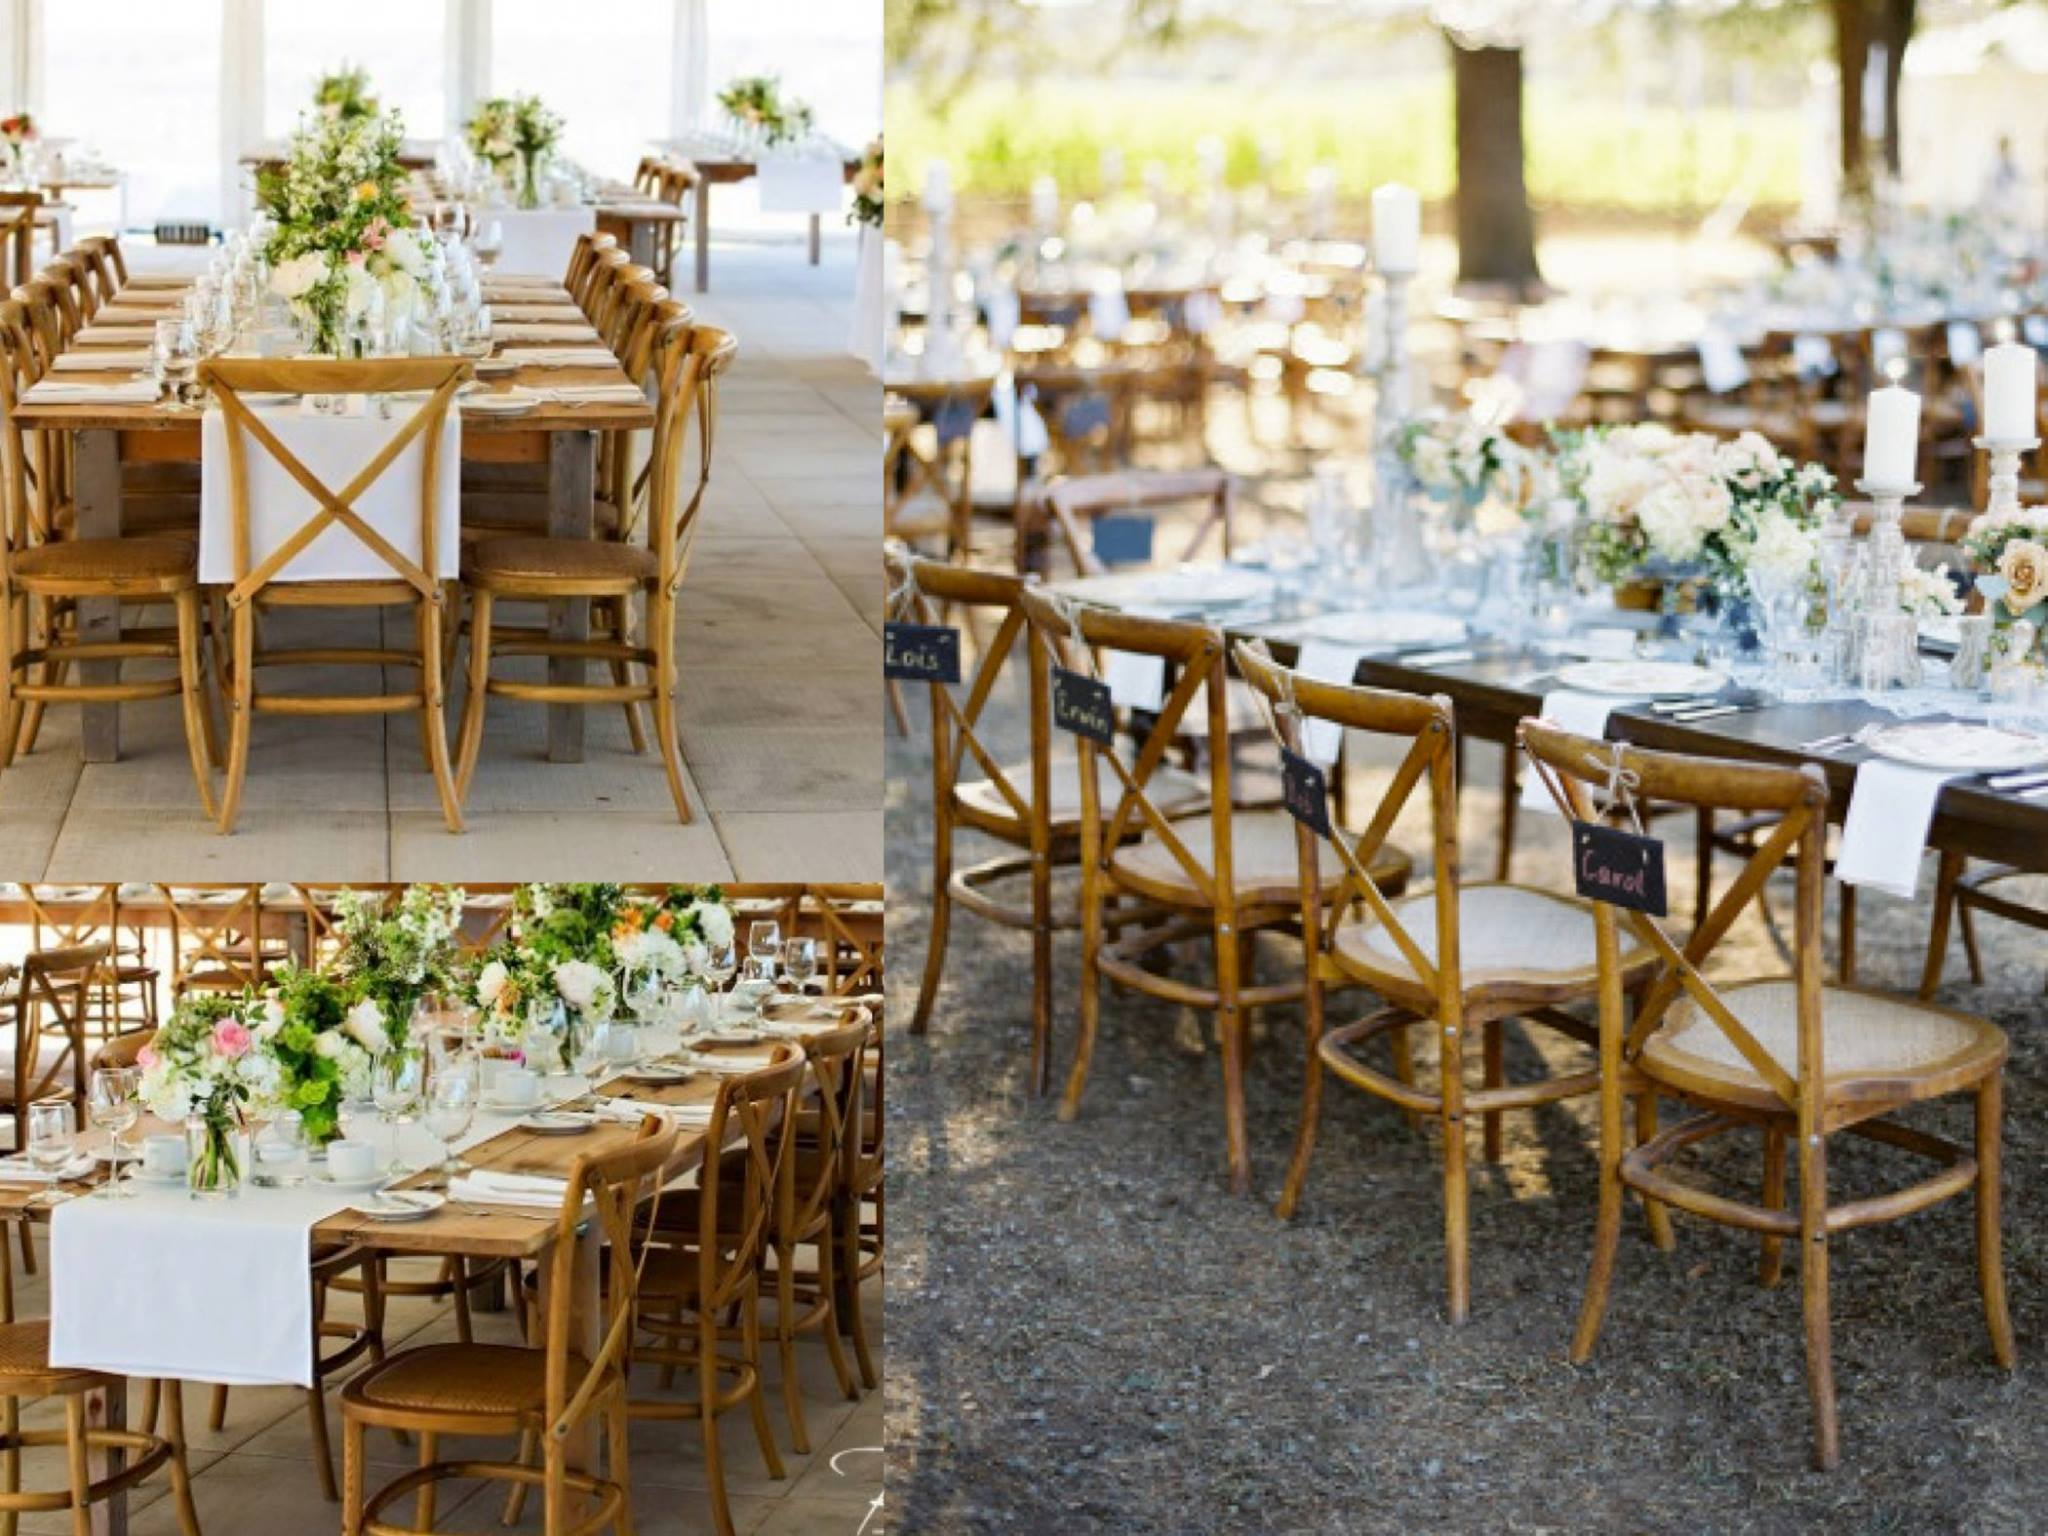 chairs wedding hire beans for bean bag timber chair hampton cross back